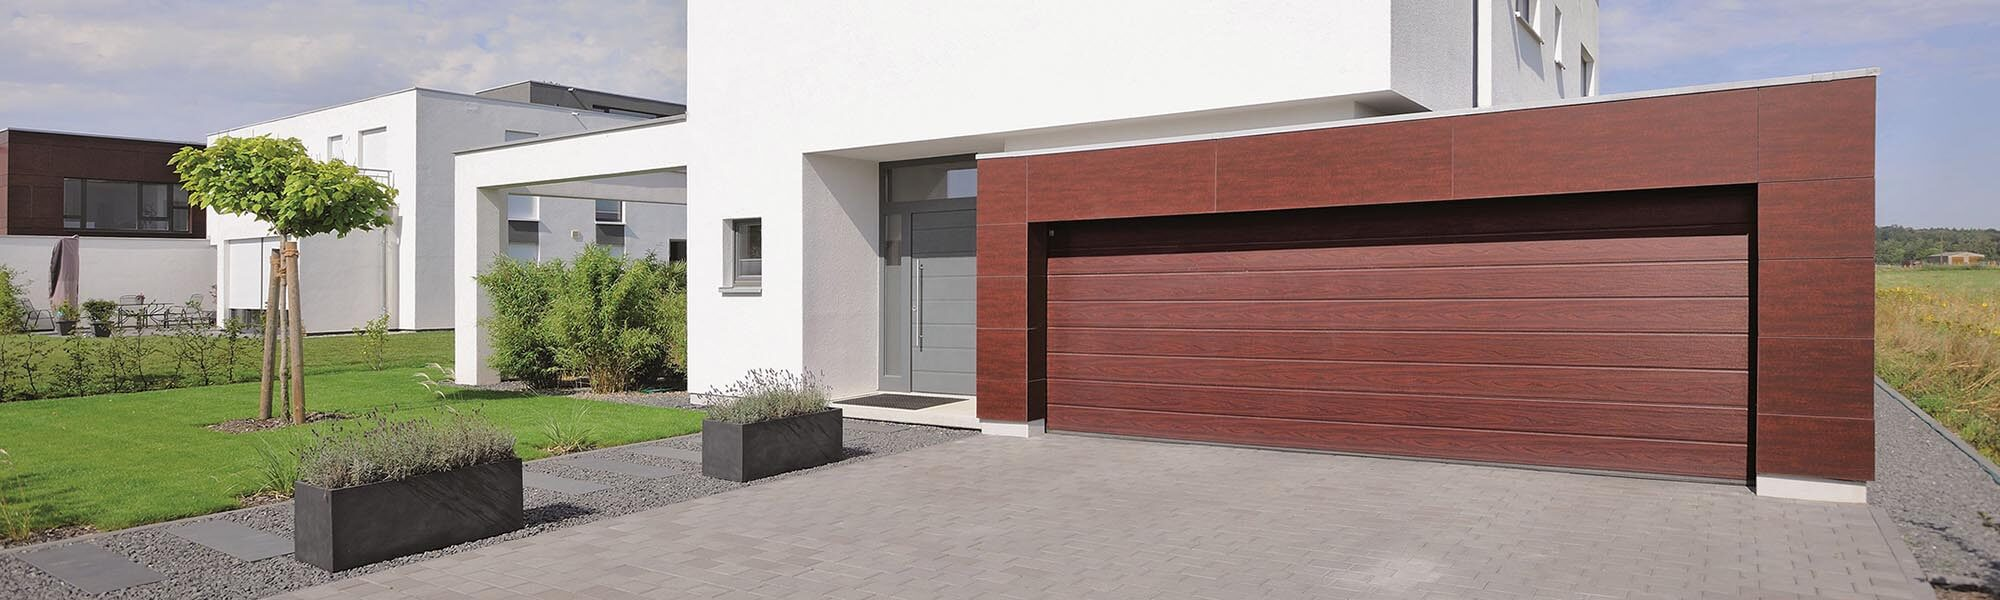 Home power doors im looking for new garage door rubansaba